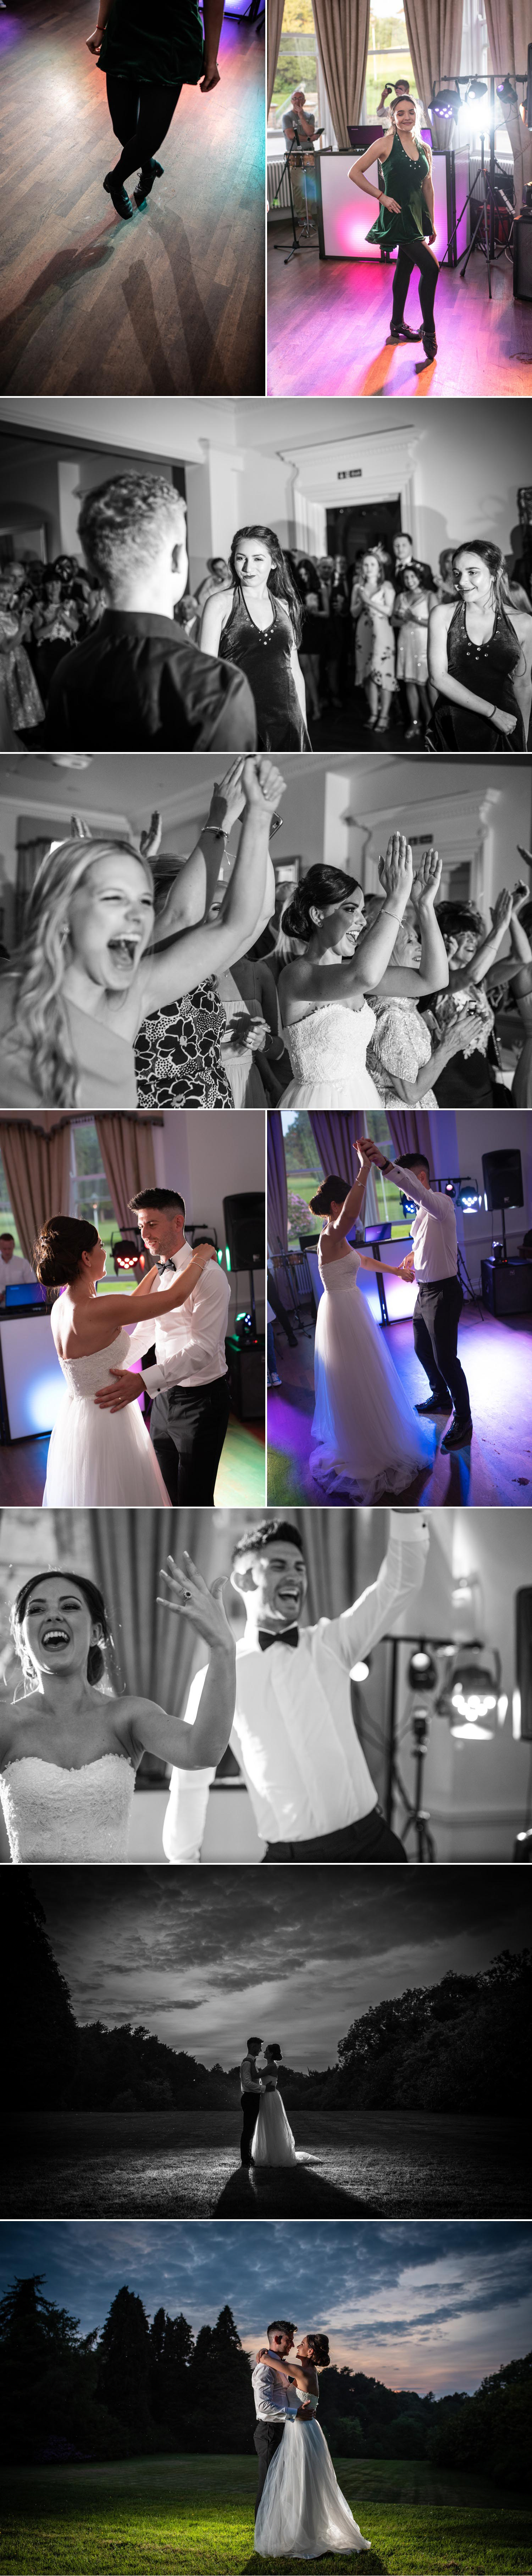 Cultra Manor Wedding Bangor 18.jpg